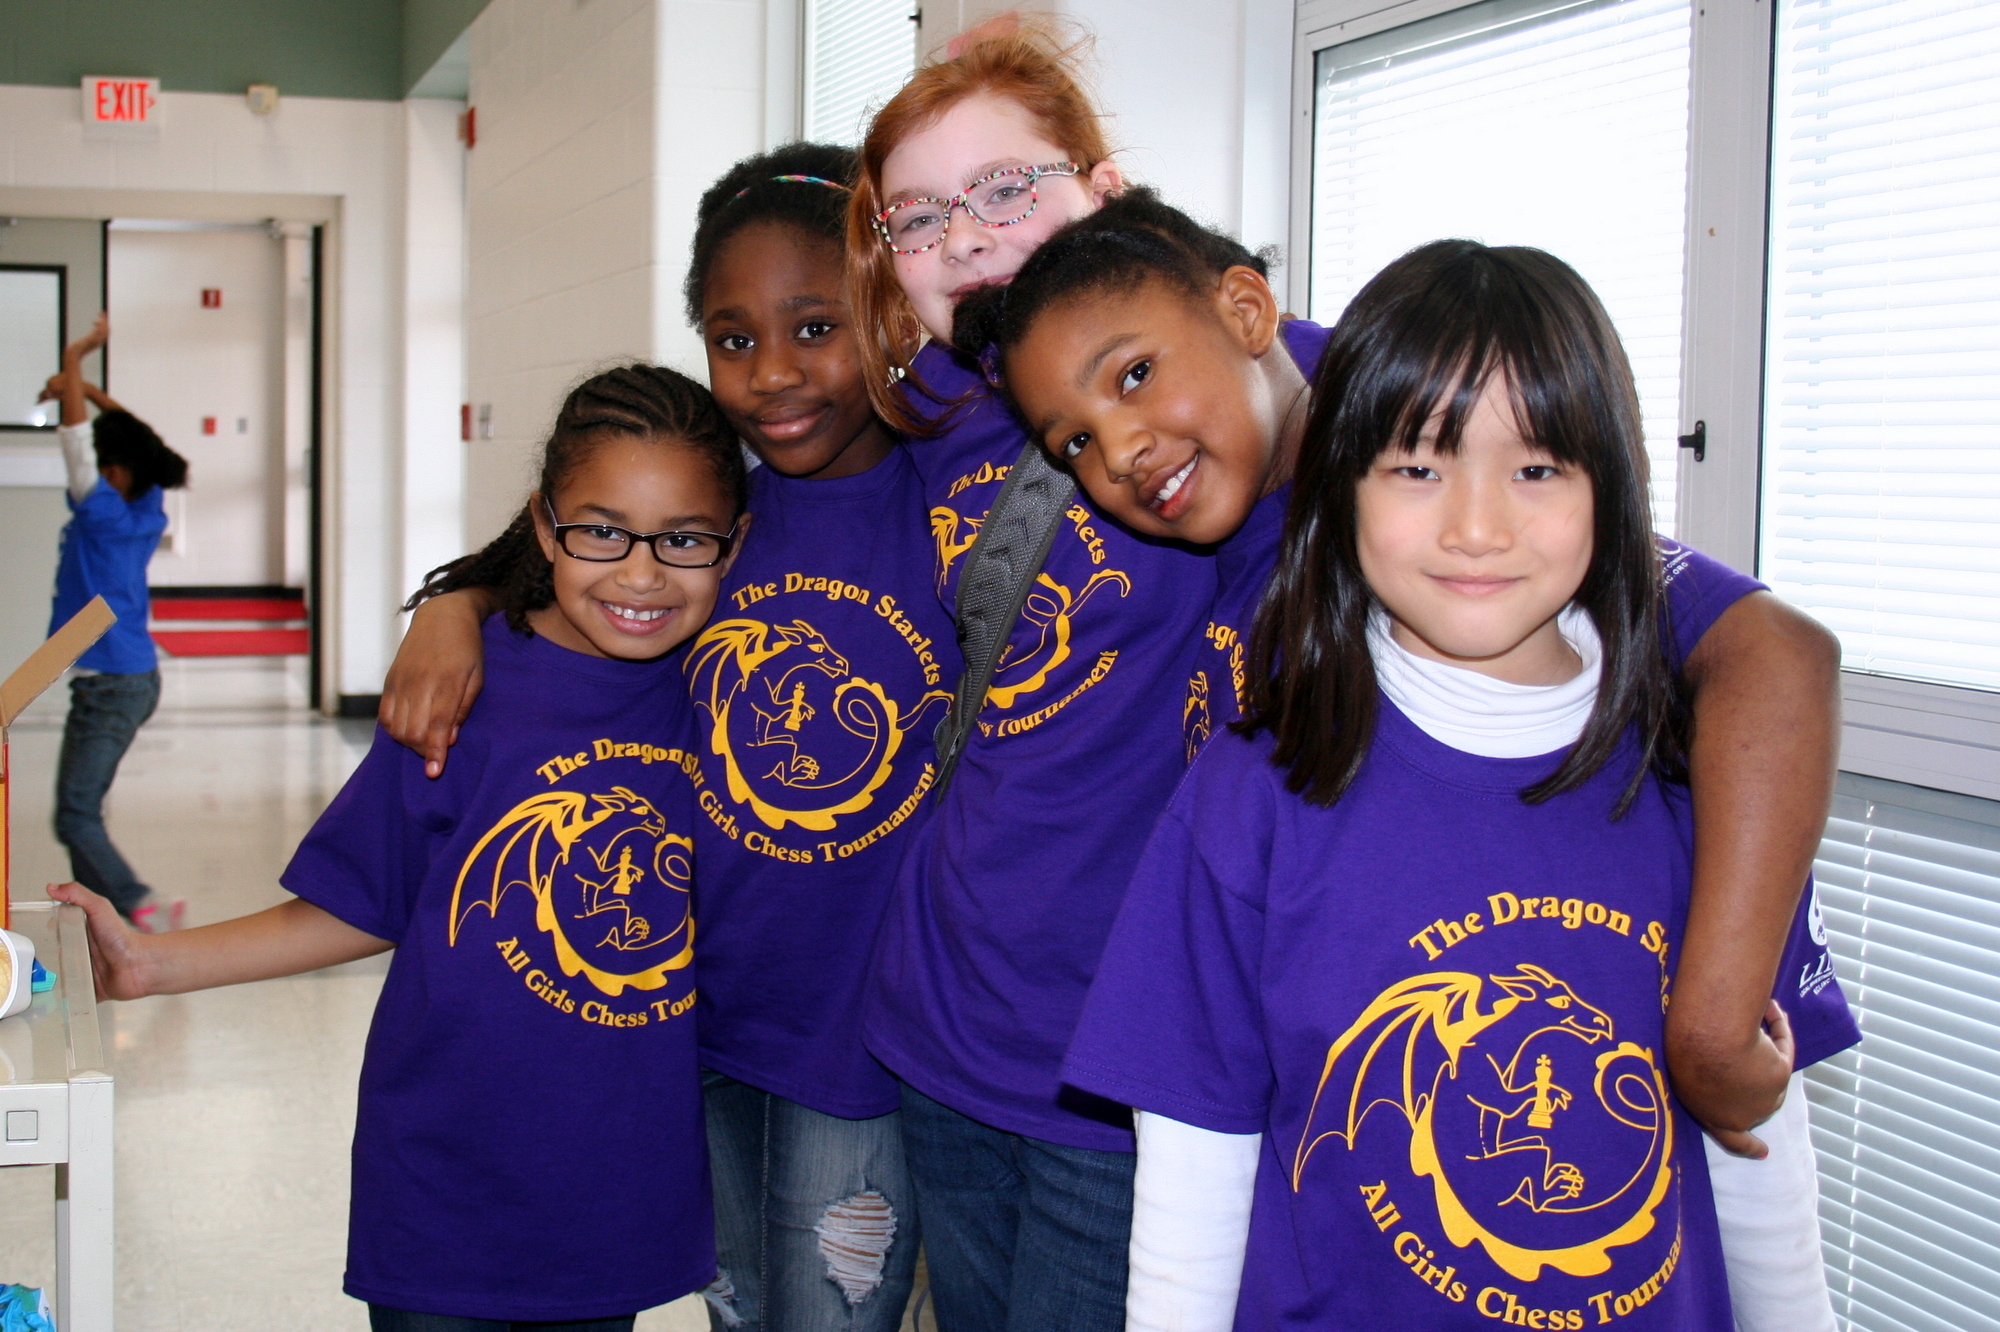 The Dragon Starlets Border Star Chess Club at Holliday Montessori during the 2014 LINC Chess Girls Tournament.